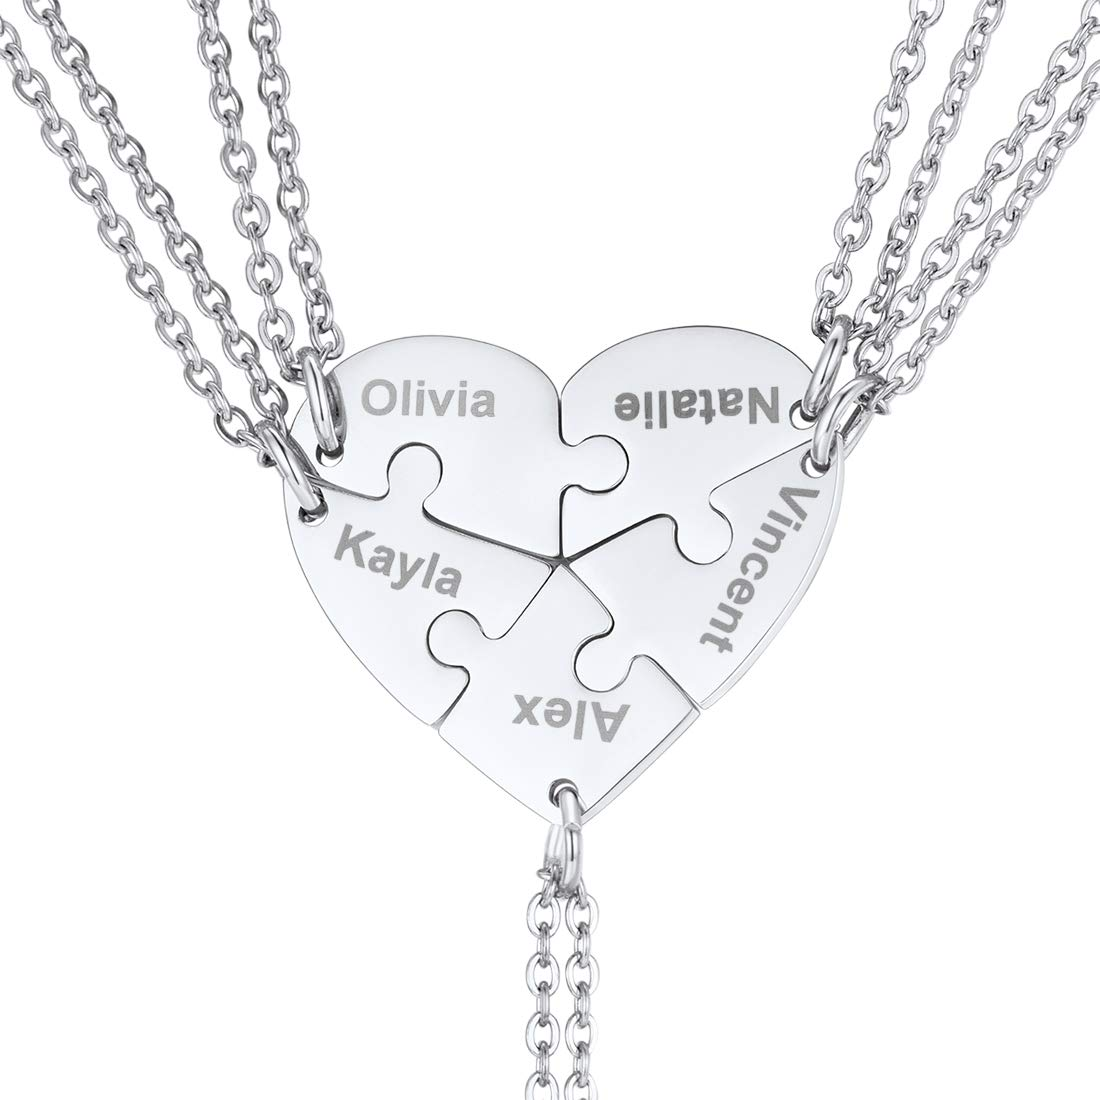 U7 BFF Necklace for 2/3/4/5/6 Stainless Steel Chain Personalized Family Love/Friendship Jewelry Set Free Engraving Heart Pendants (Set of 5 Stainless Customized)